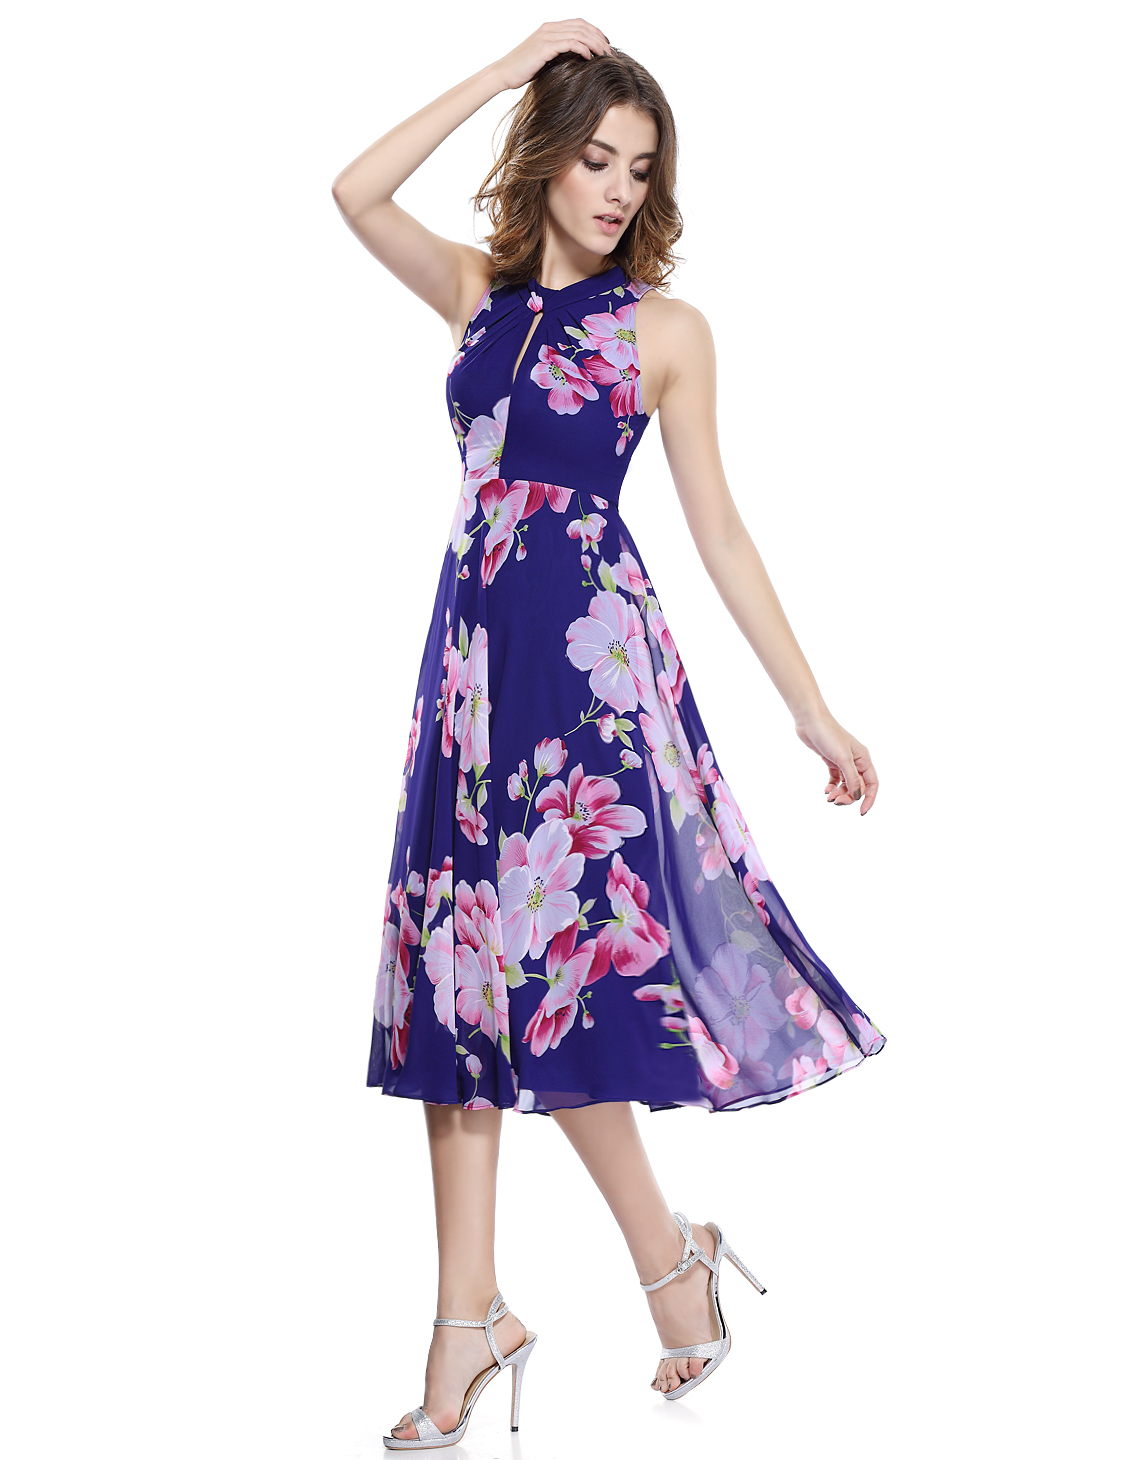 Alisa Pan Summer Beach Dress Floral Cocktail Party Casual Midi ...